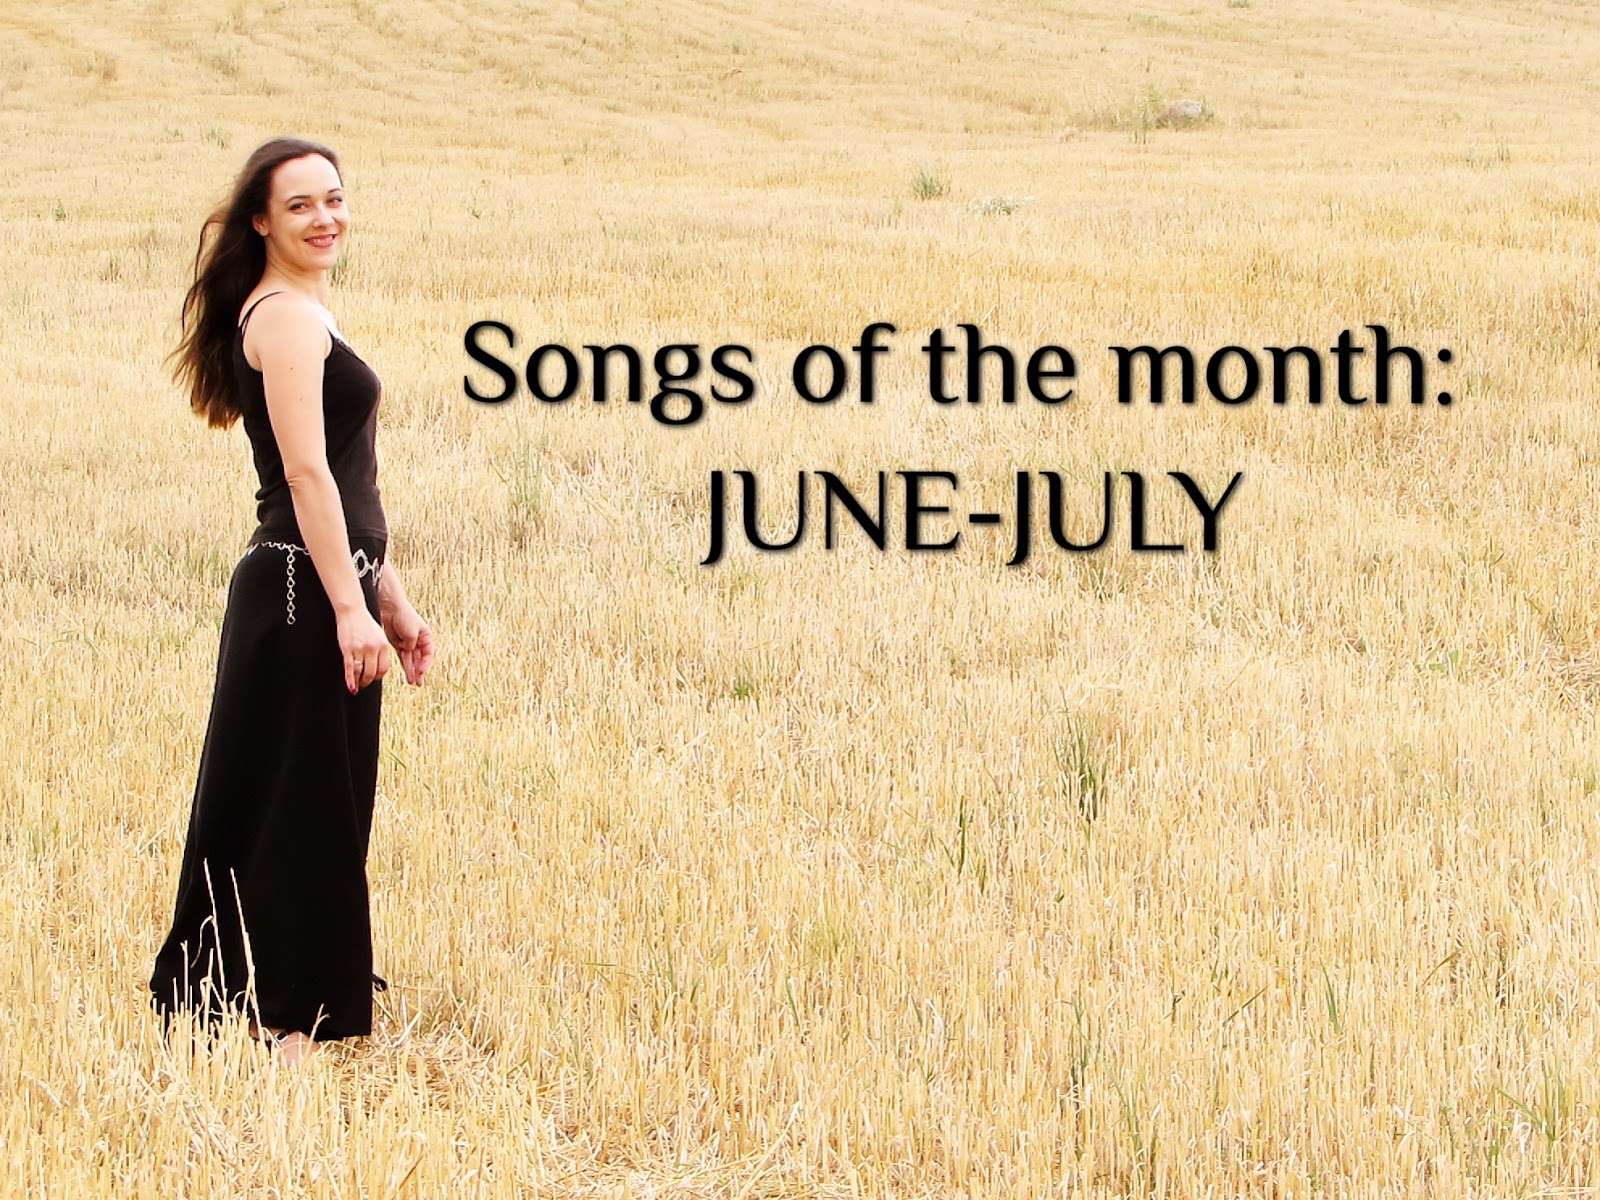 Songs of the month: June and July